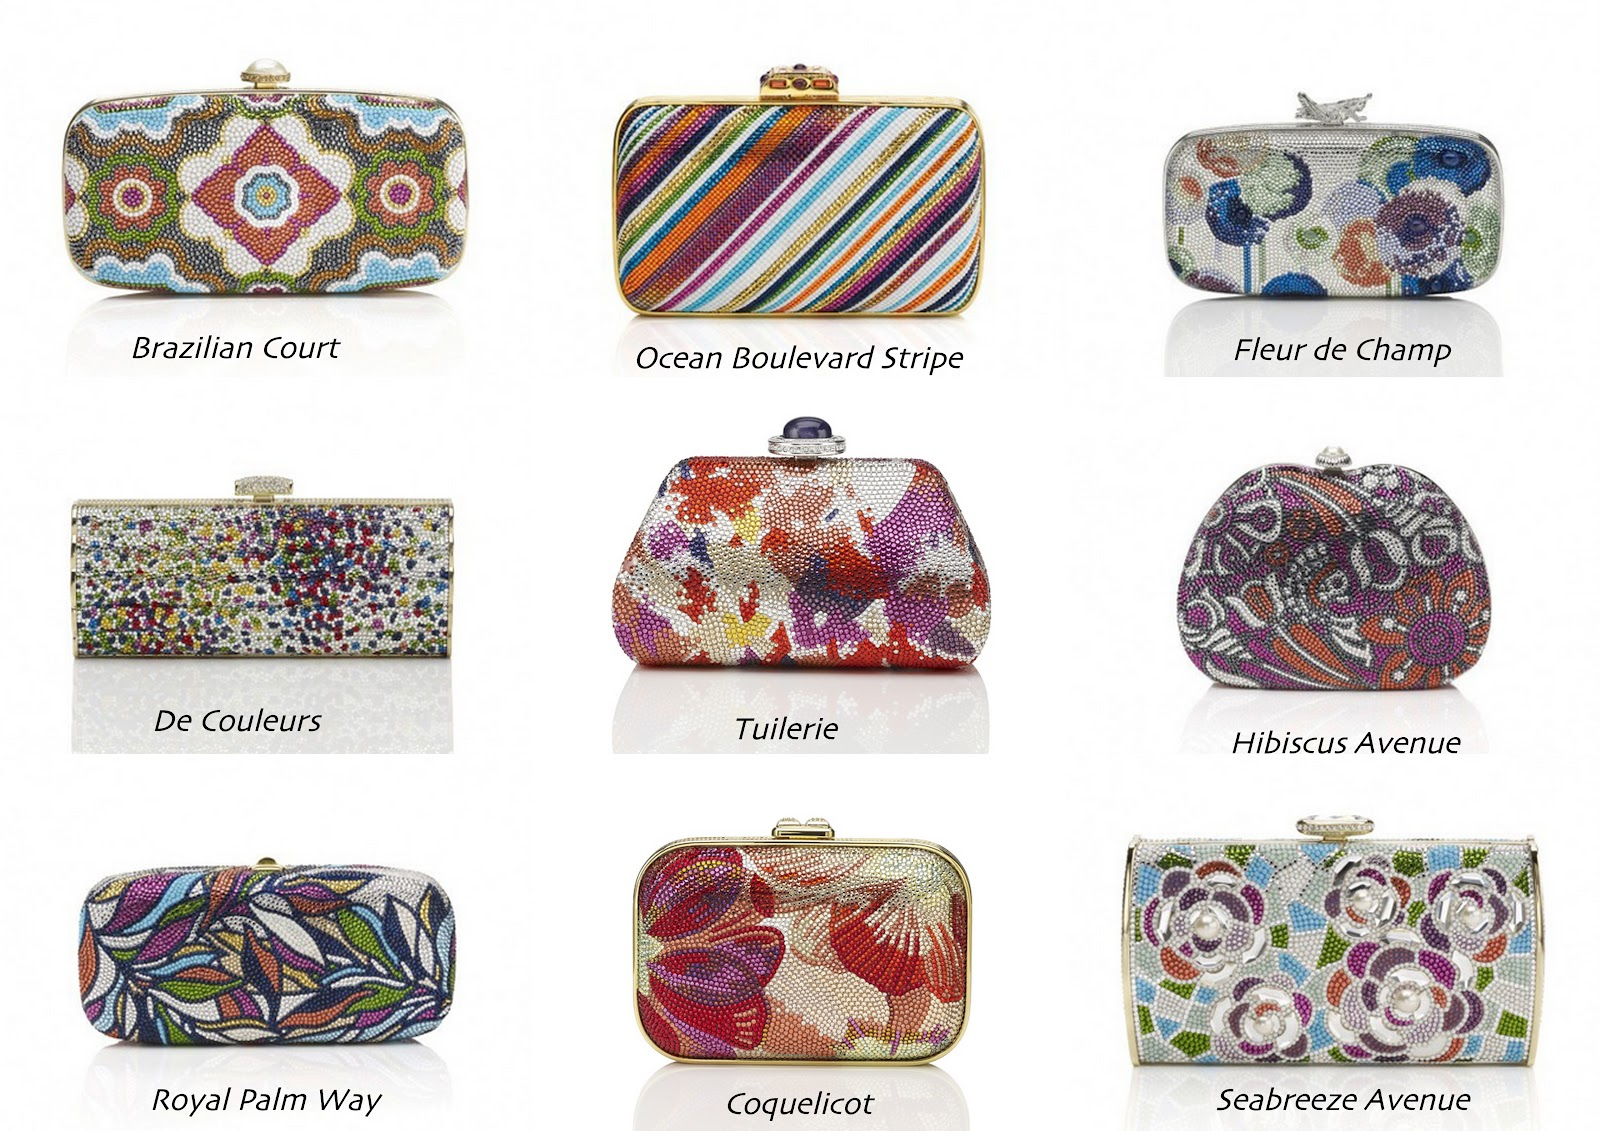 e004385a4b0b Has your heart skipped a beat yet  Wait until you hear how much each of  these extravagant designs cost. A simple clutch can start from  1995 to   2995 and ...